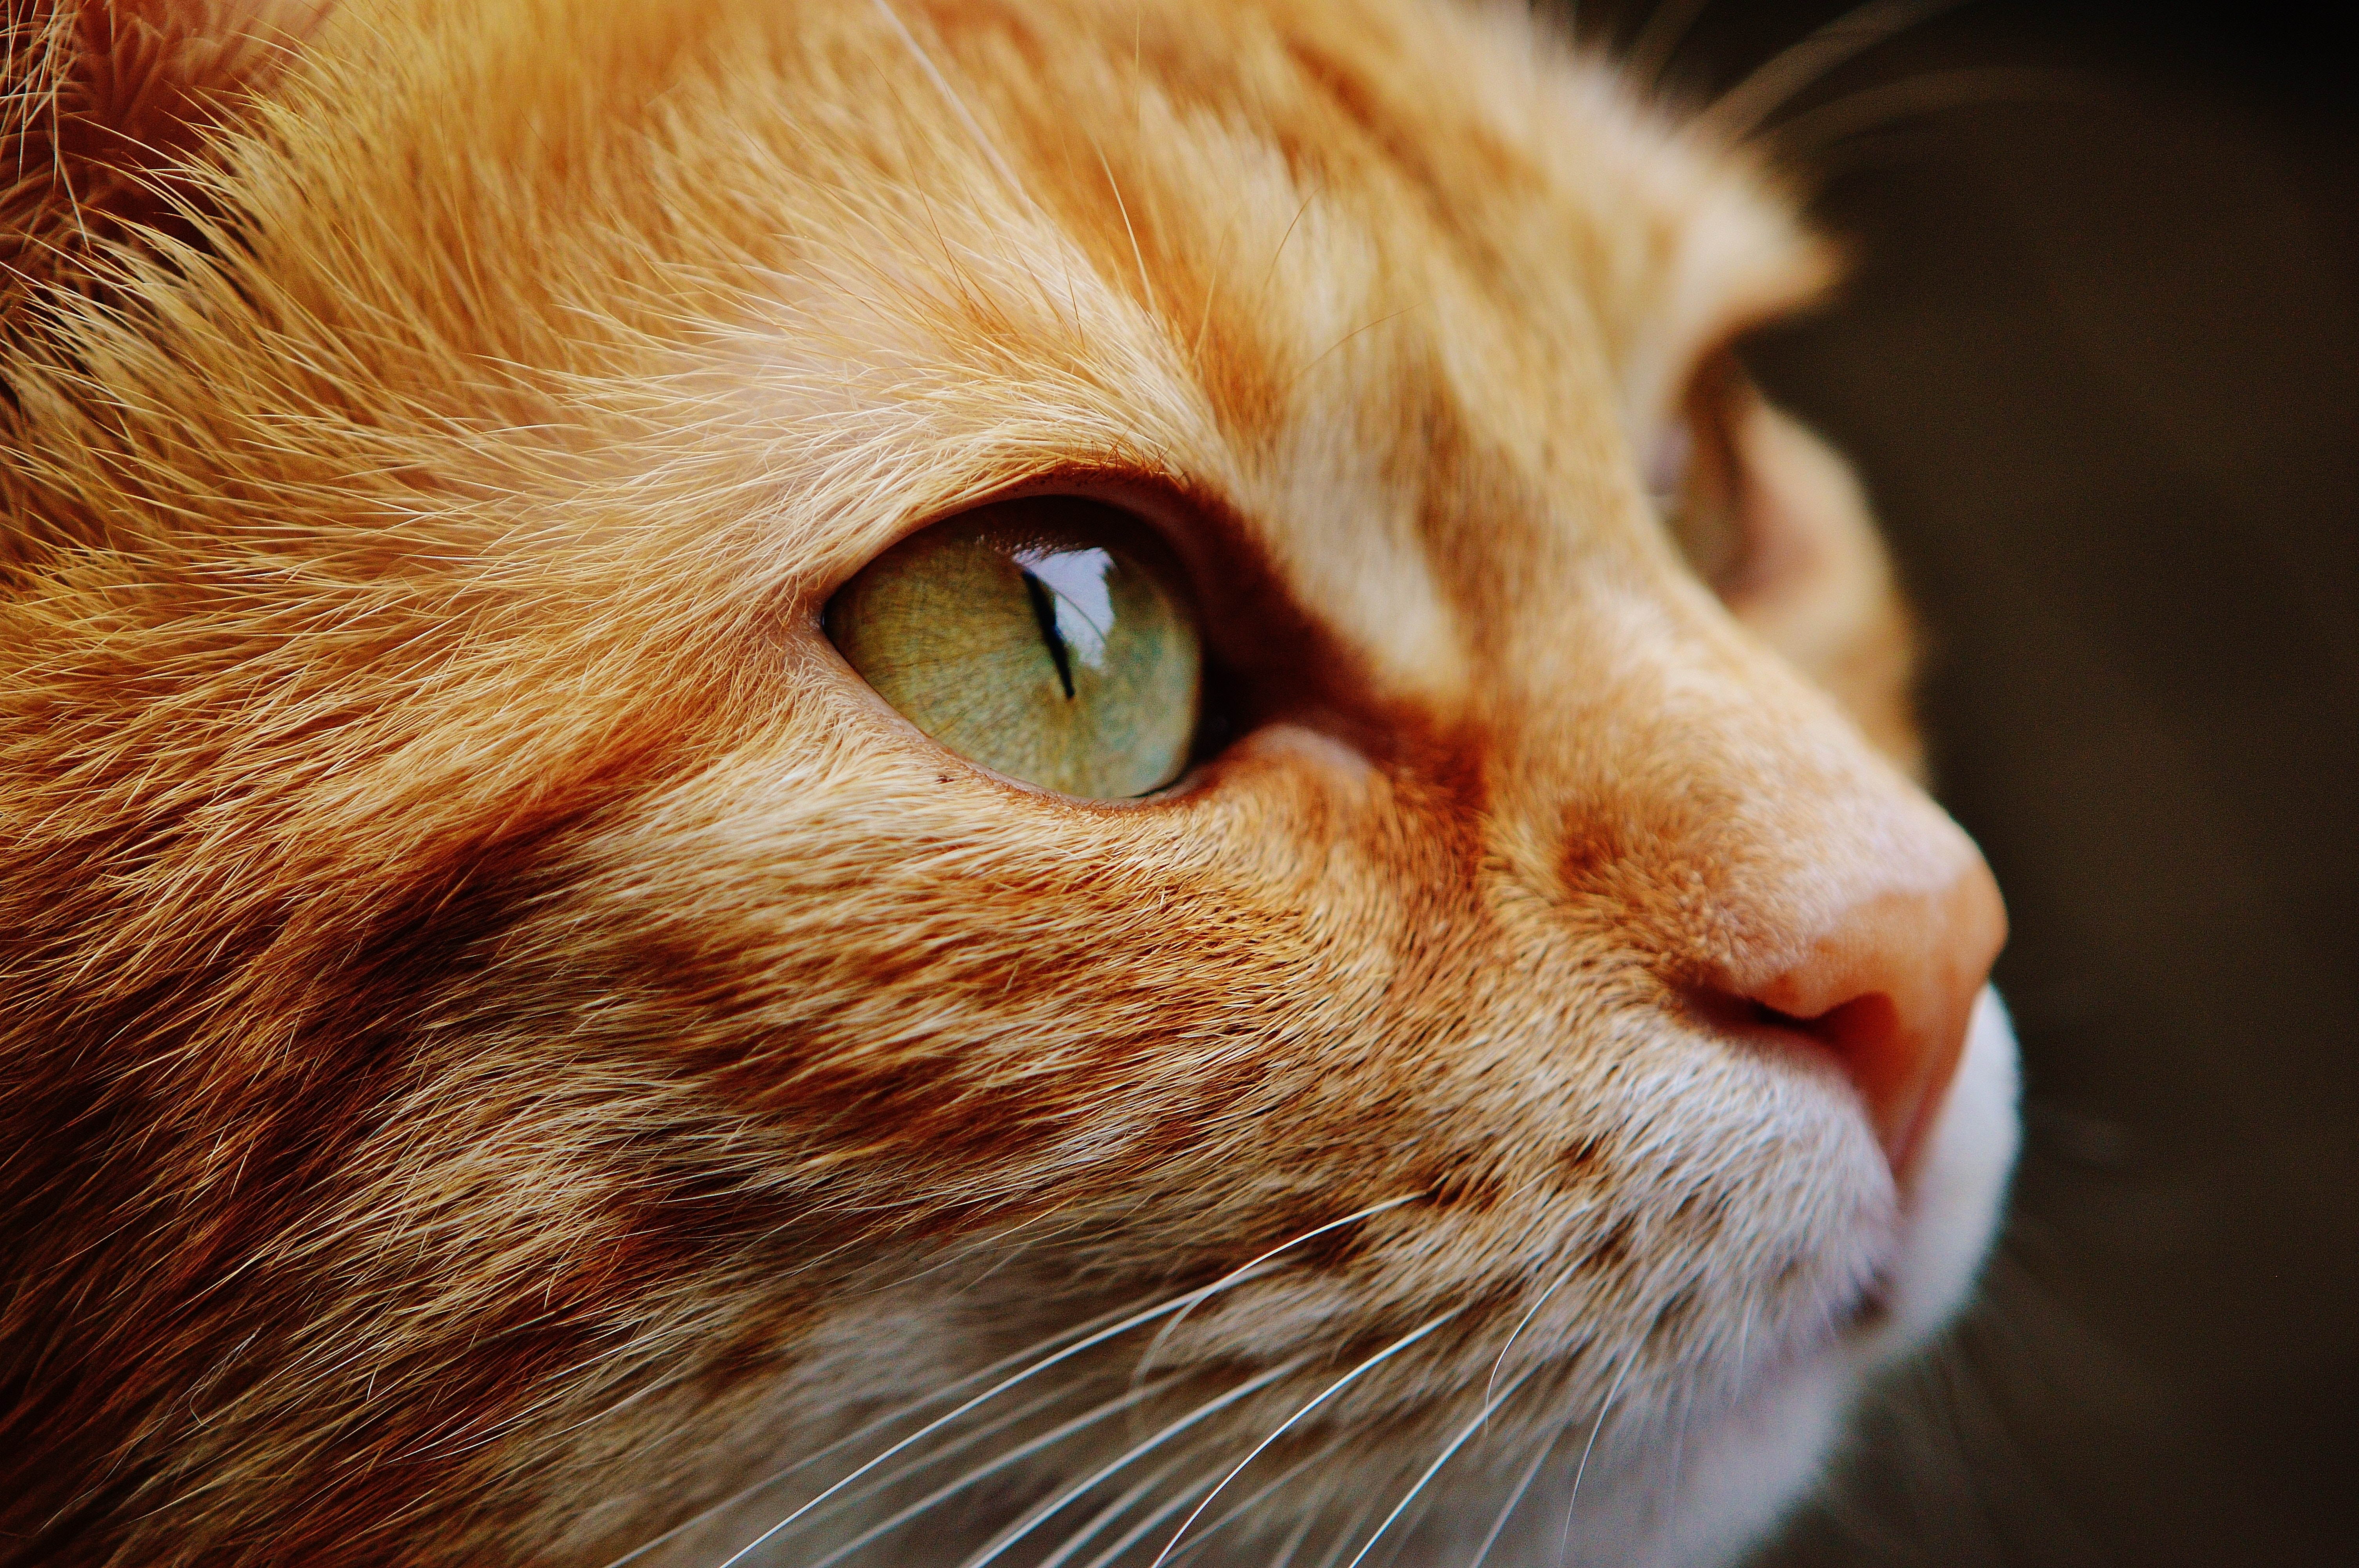 Low Angle View of Cat on Tree · Free Stock Photo